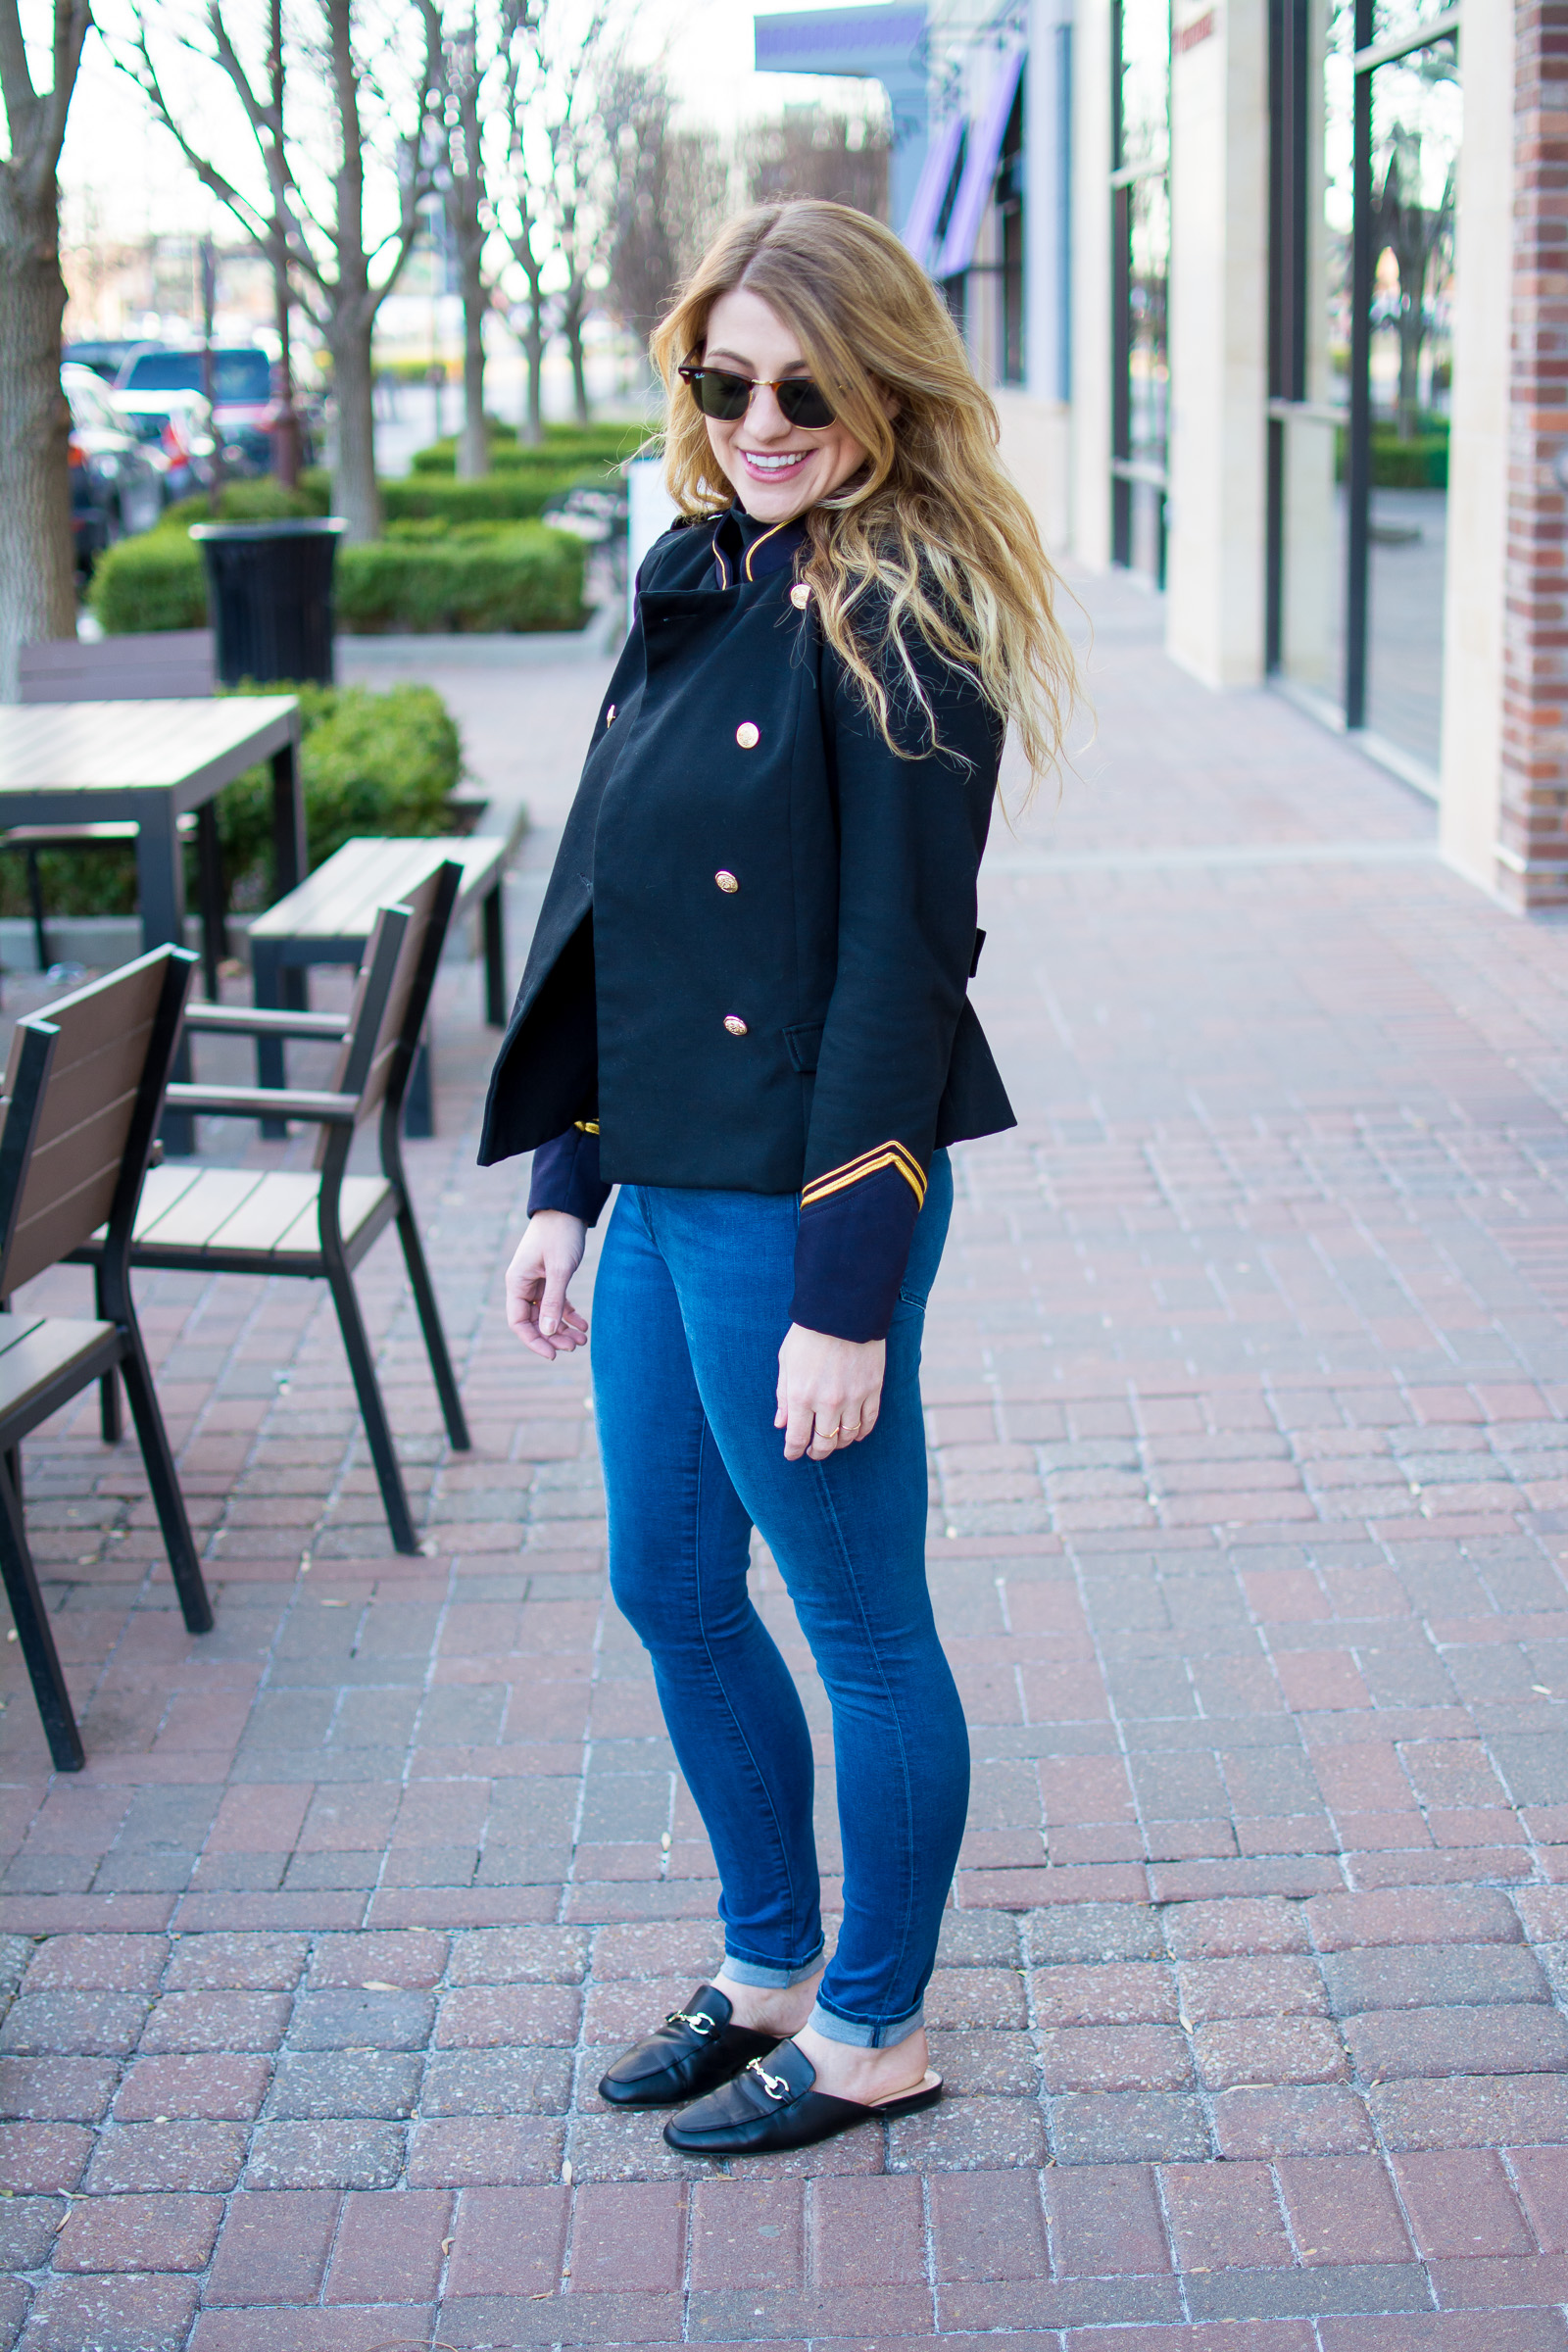 A Military Jacket with Skinny Jeans and Leather Mule Loafers. | Ashley from Le Stylo Rouge